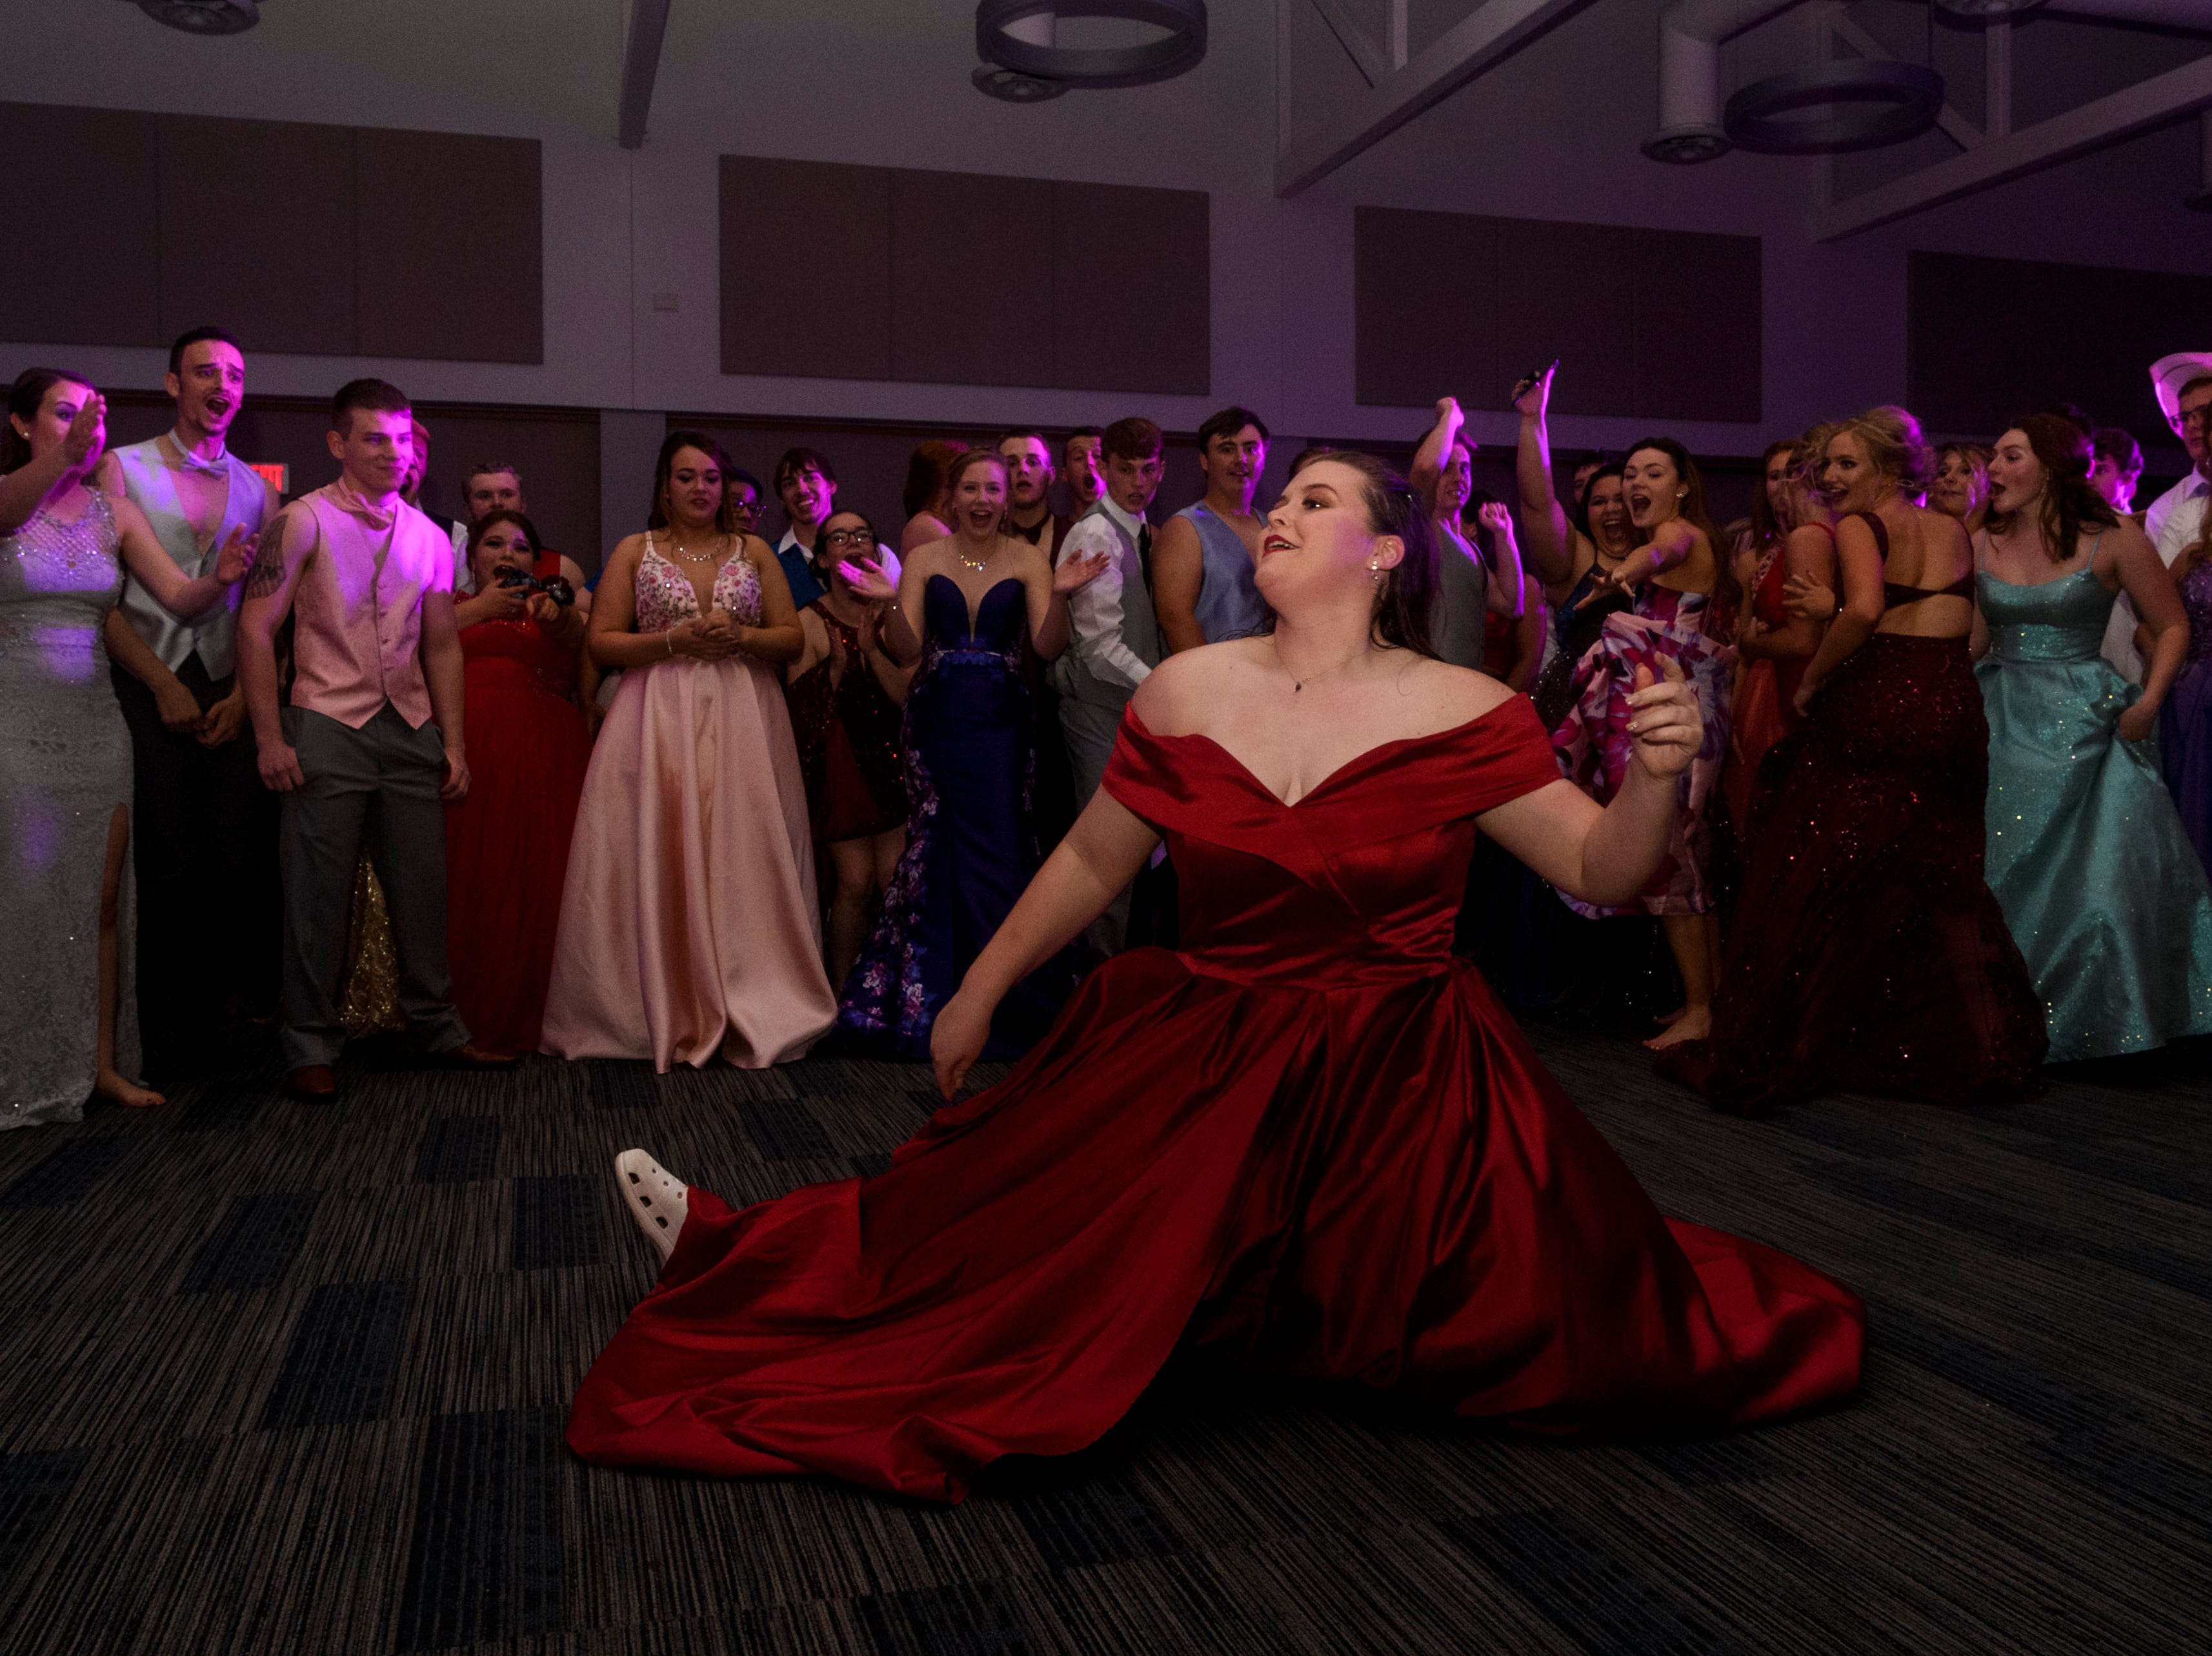 A student shows off in the dance circle during Mt. Vernon's prom held inside the University of Southern Indiana's Carter Hall in Evansville, Ind., Saturday, May 4, 2019.